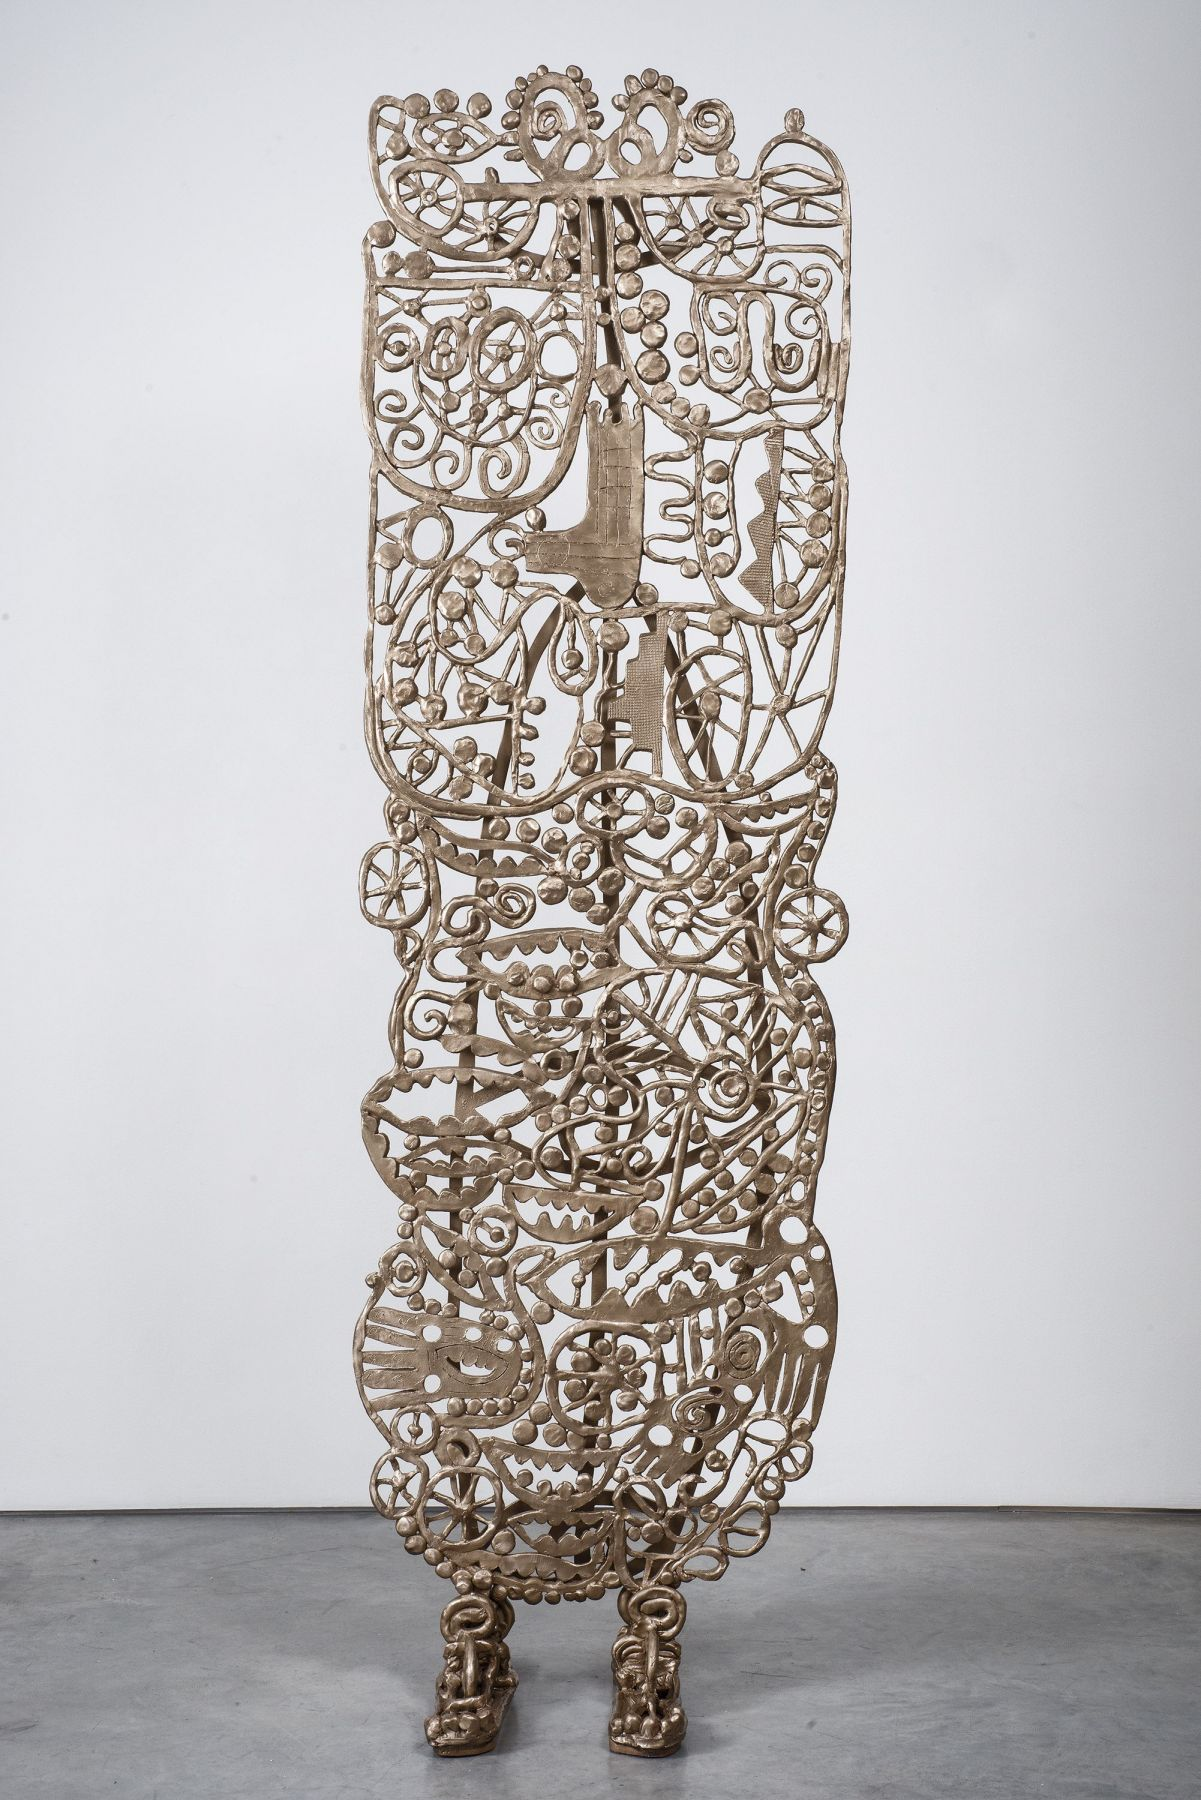 a bronze sculpture by william j. o'brien in a gallery exhibition in chelsea